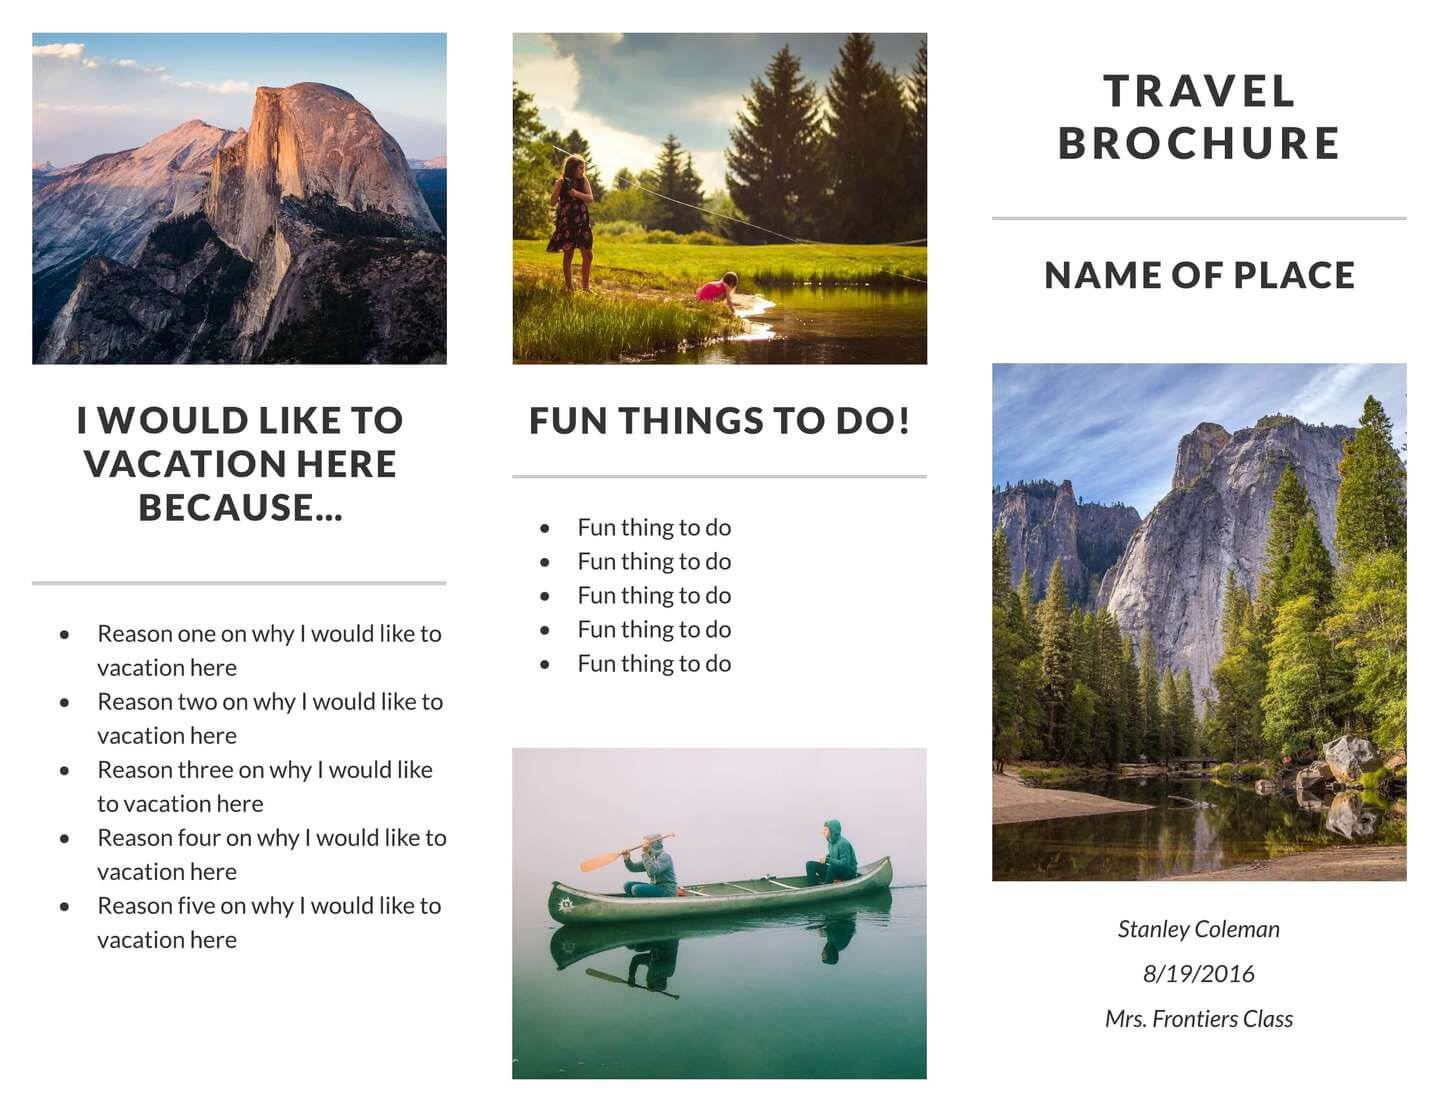 Free Tri Fold Brochure Templates & Examples [15+ Free Templates] Intended For Travel Brochure Template For Students